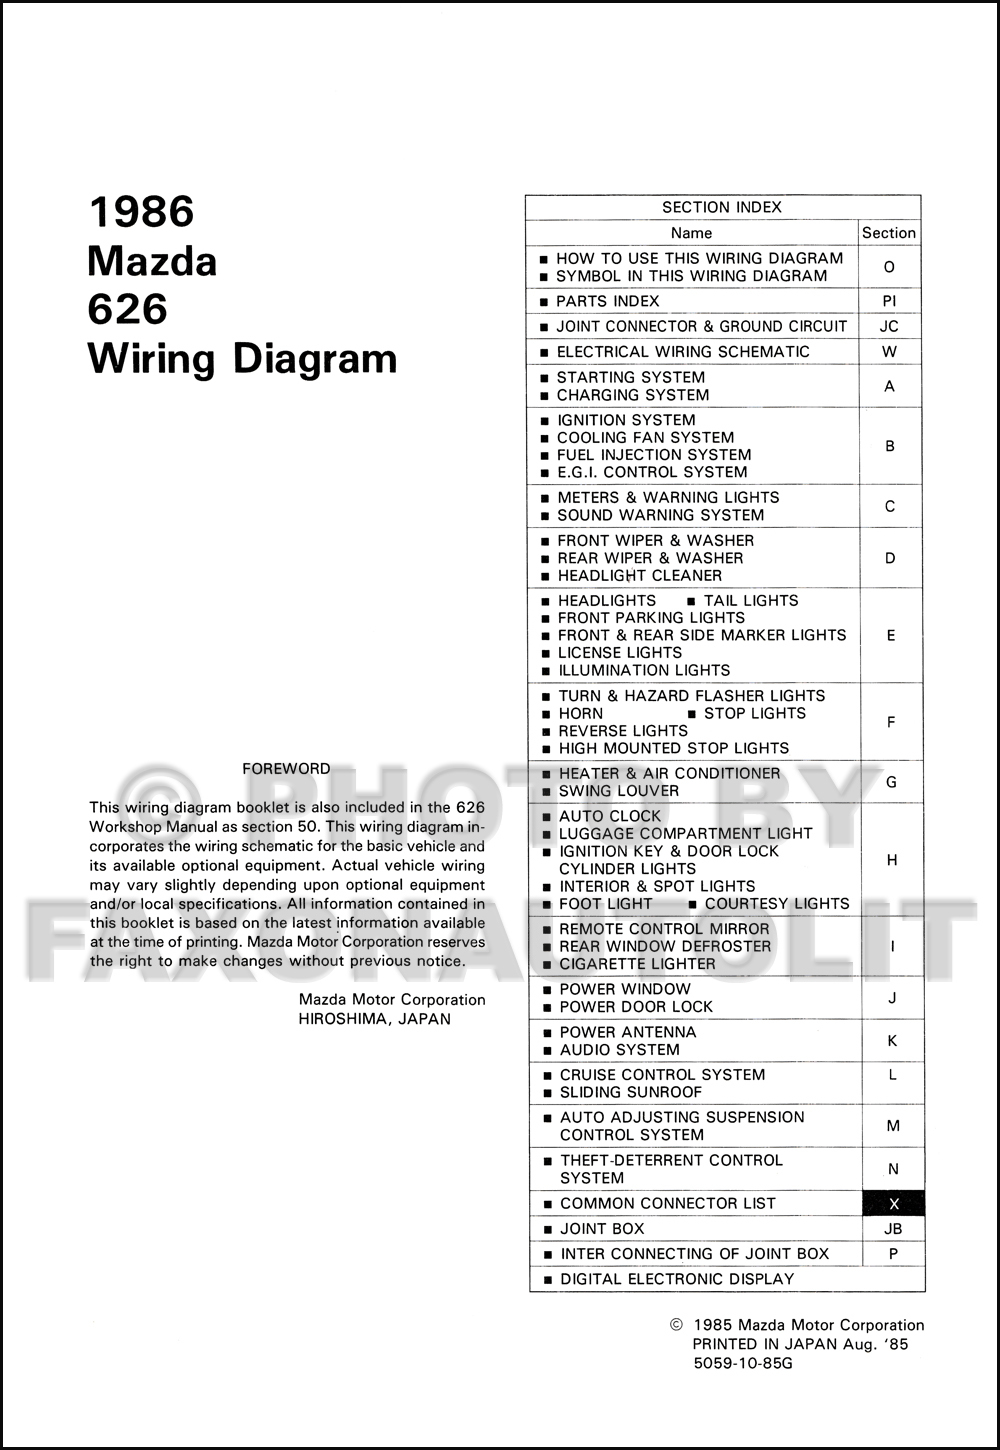 1999 mazda 626 starter wiring diagram d113c78 96 626 mazda wiring diagram wiring resources  d113c78 96 626 mazda wiring diagram